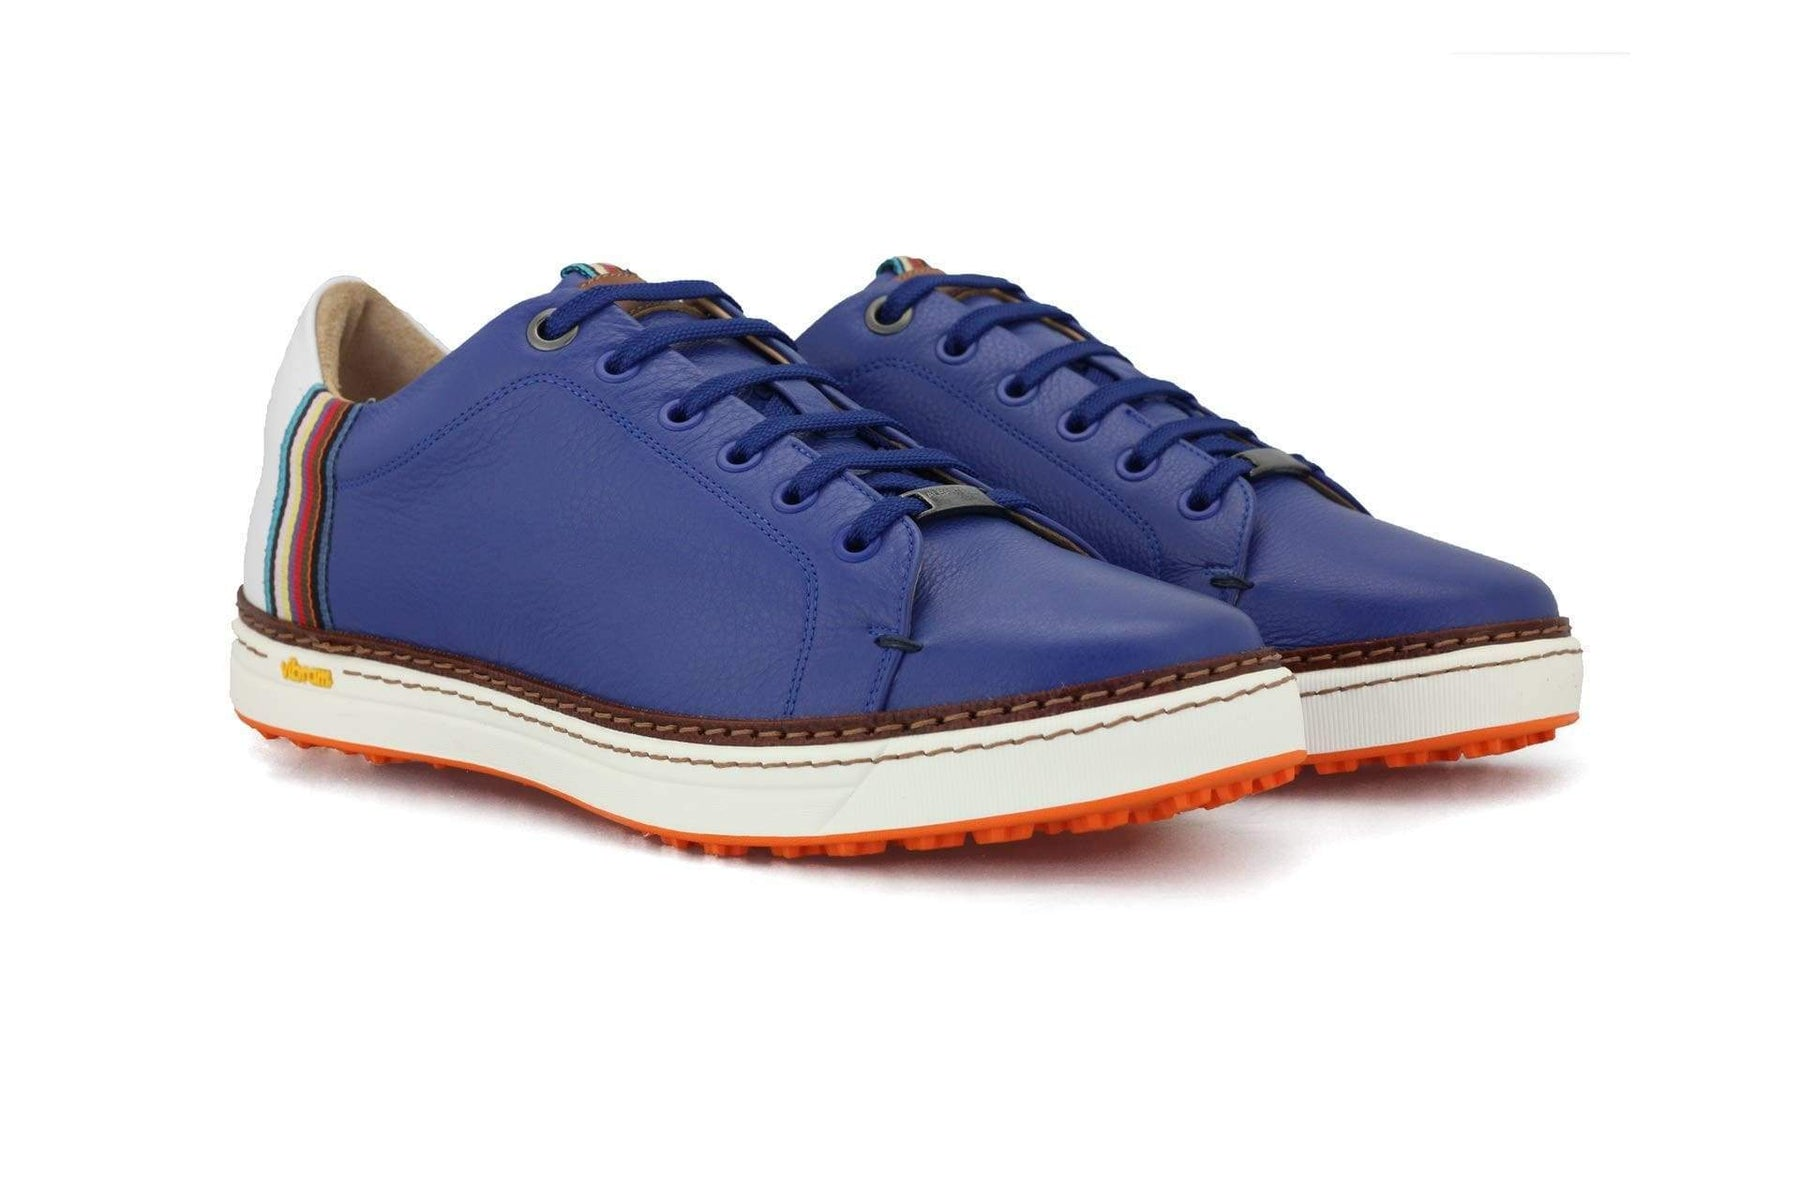 Men's Spikeless Golf Shoe | Italian Style & Comfort | Royal Albartross The Woodley Blue